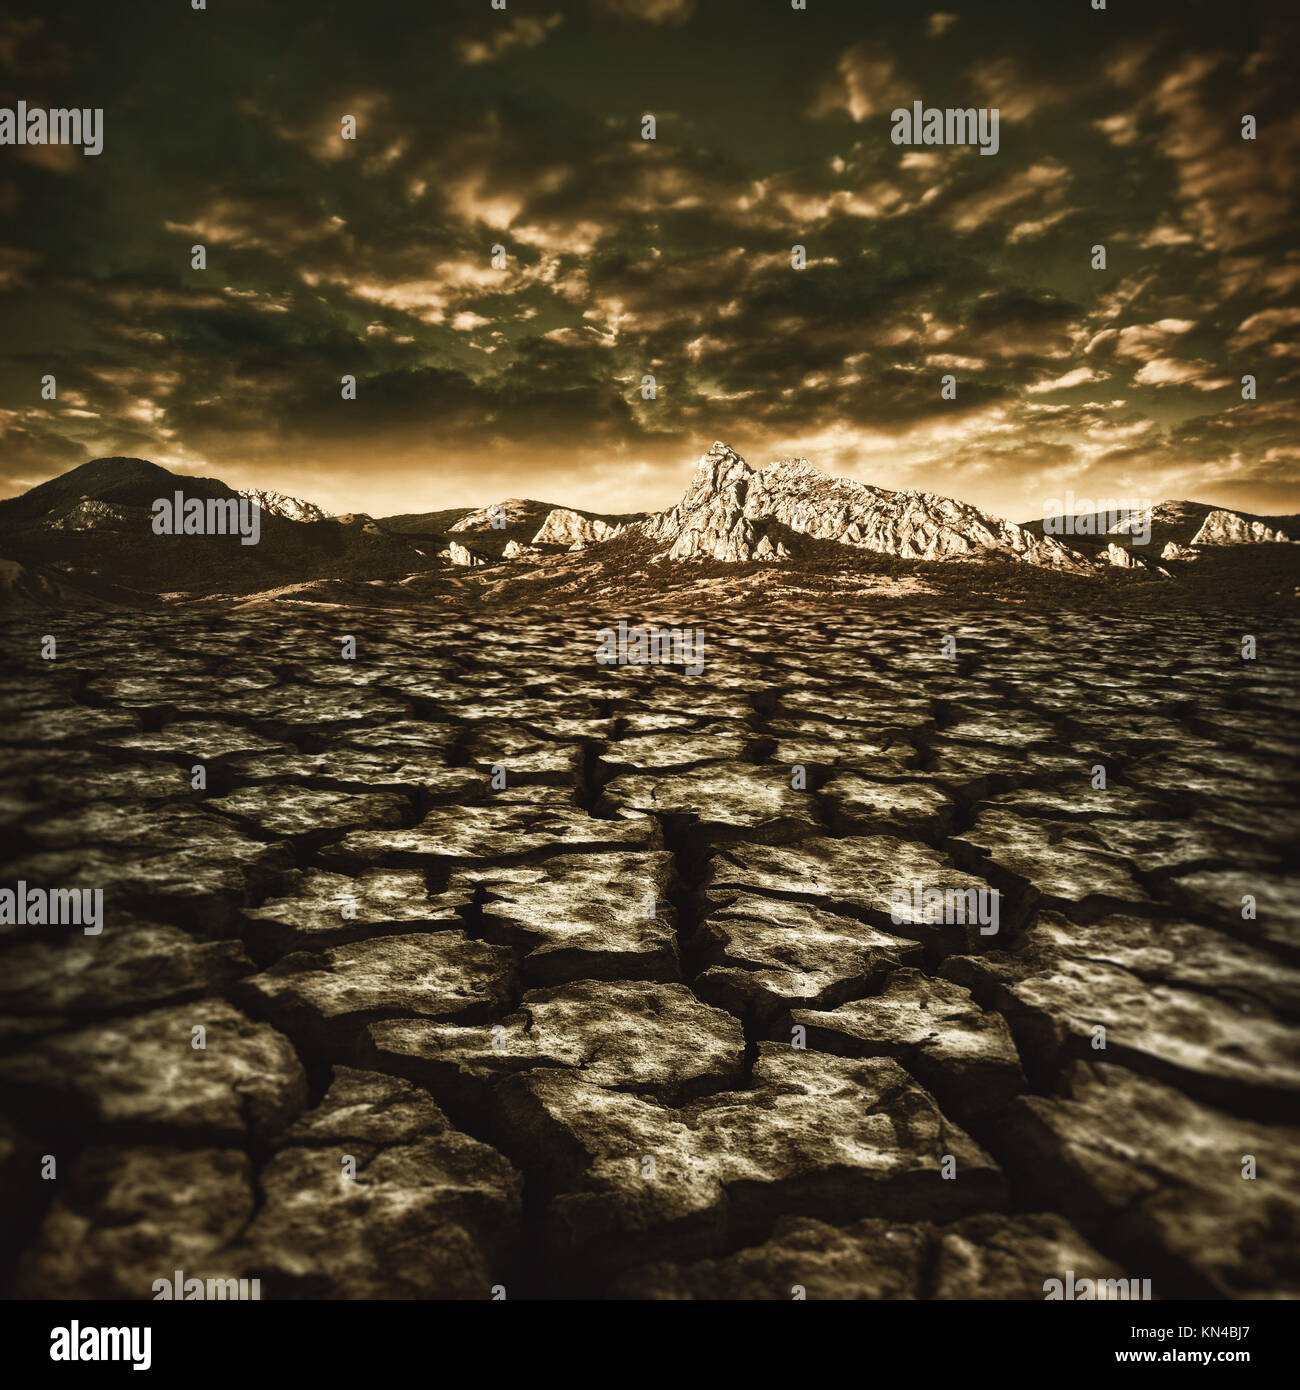 natural disaster, abstract environmental backgrounds. - Stock Image